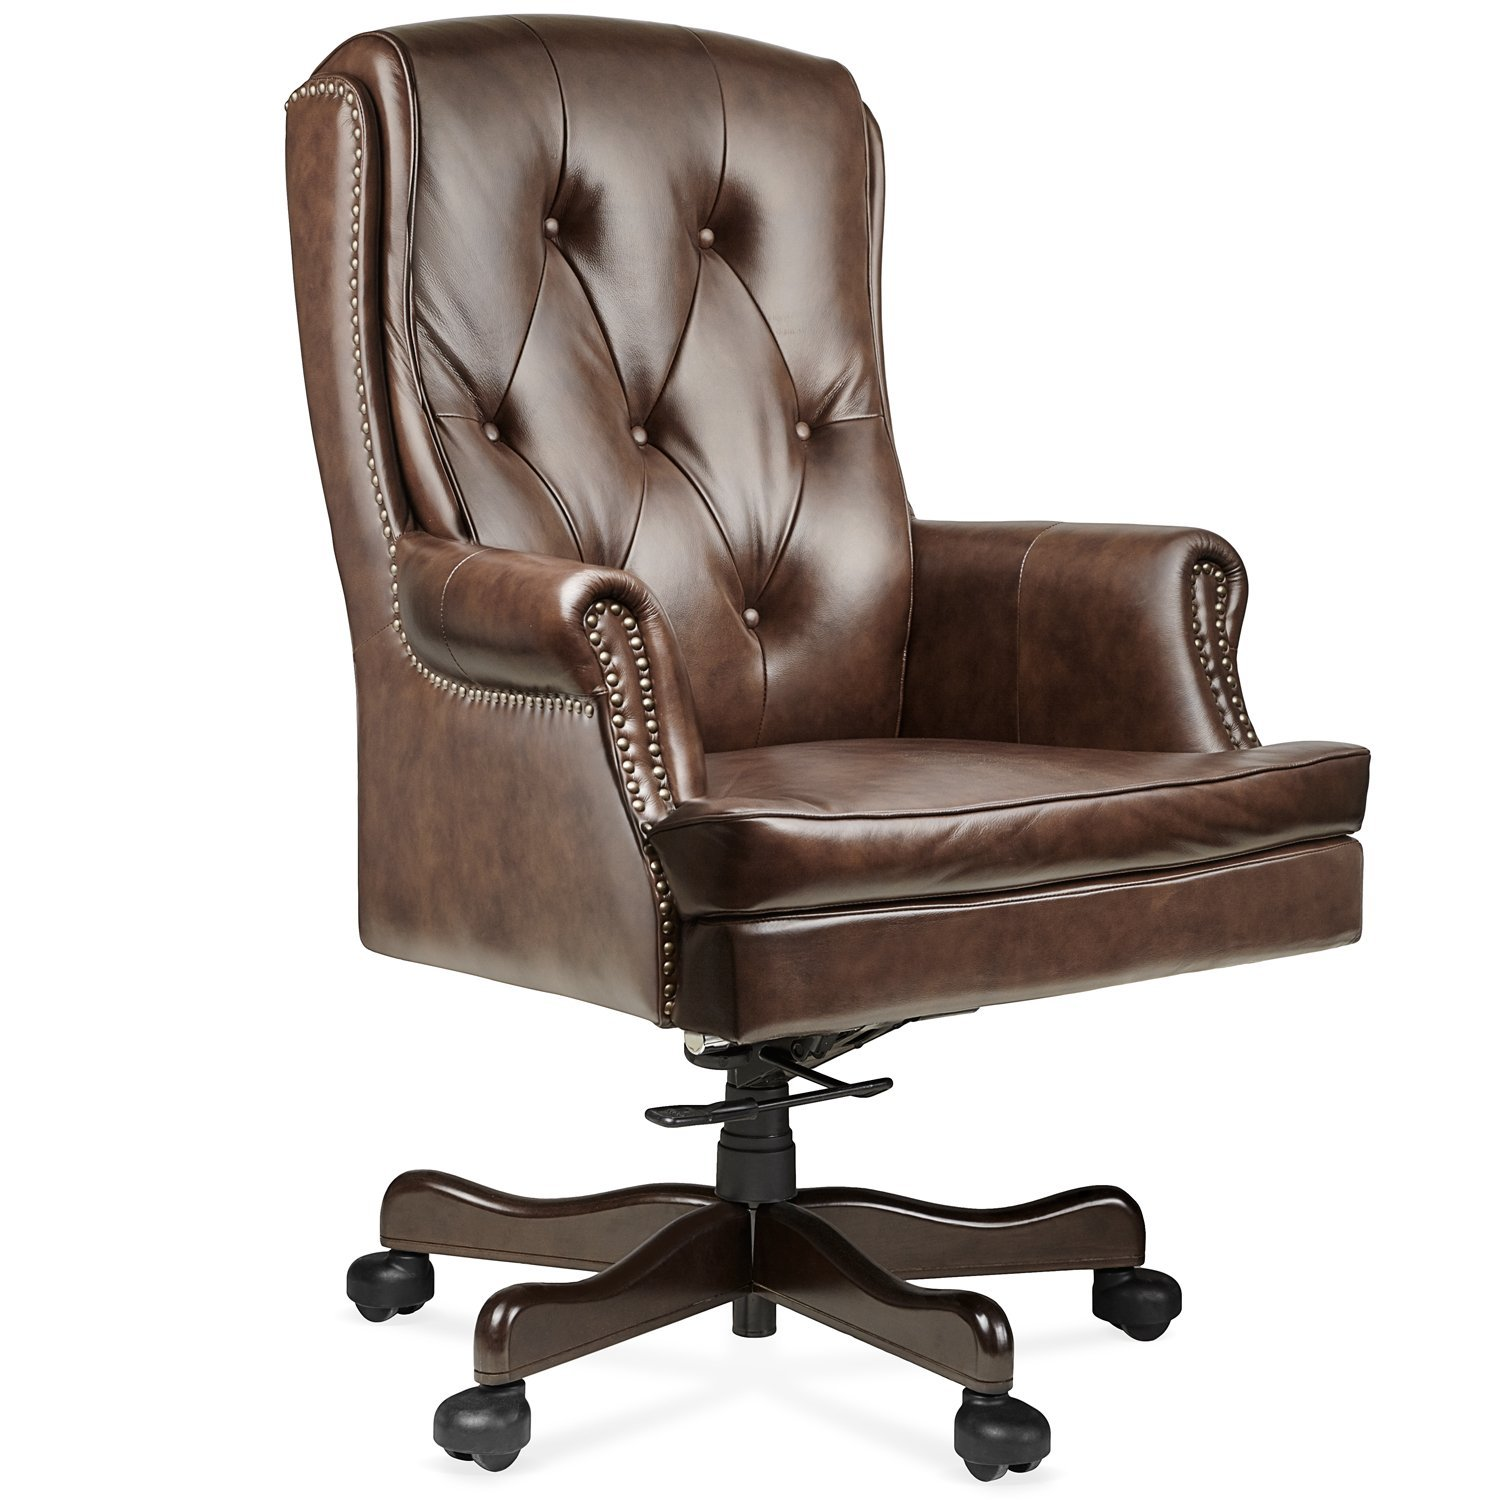 best high back office chair under 500